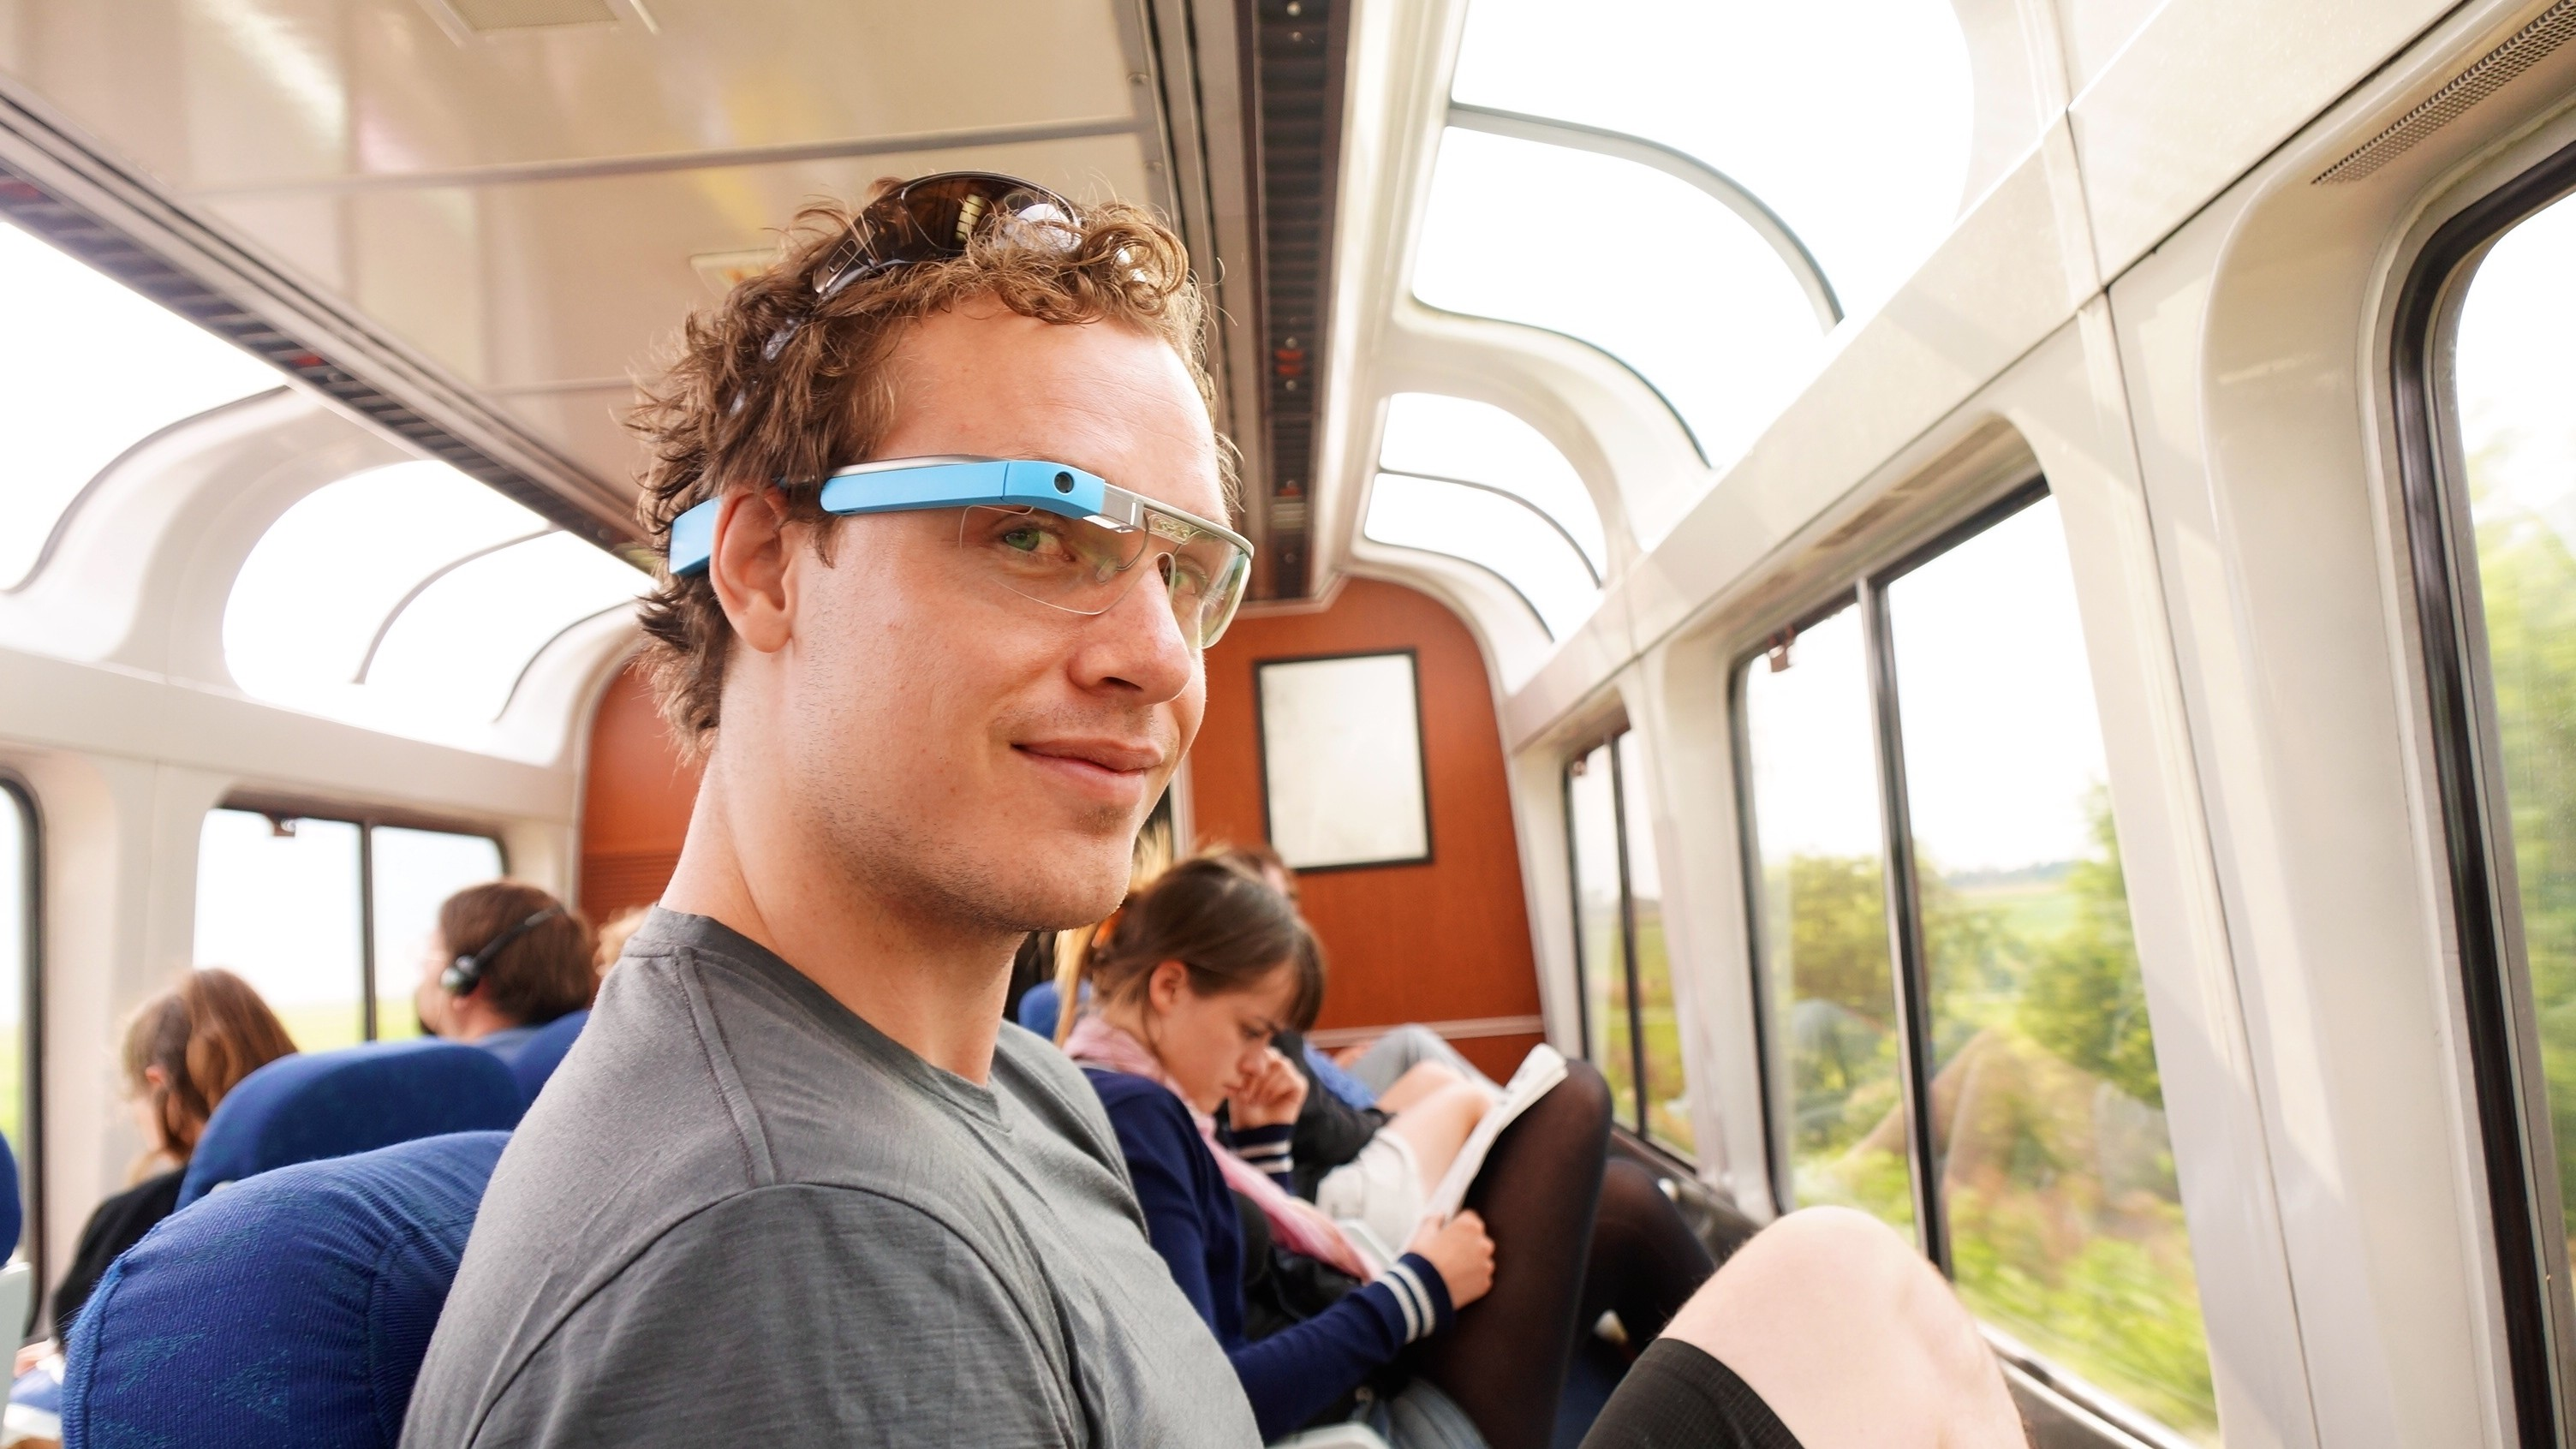 Why Is Google Glass Still a Thing?